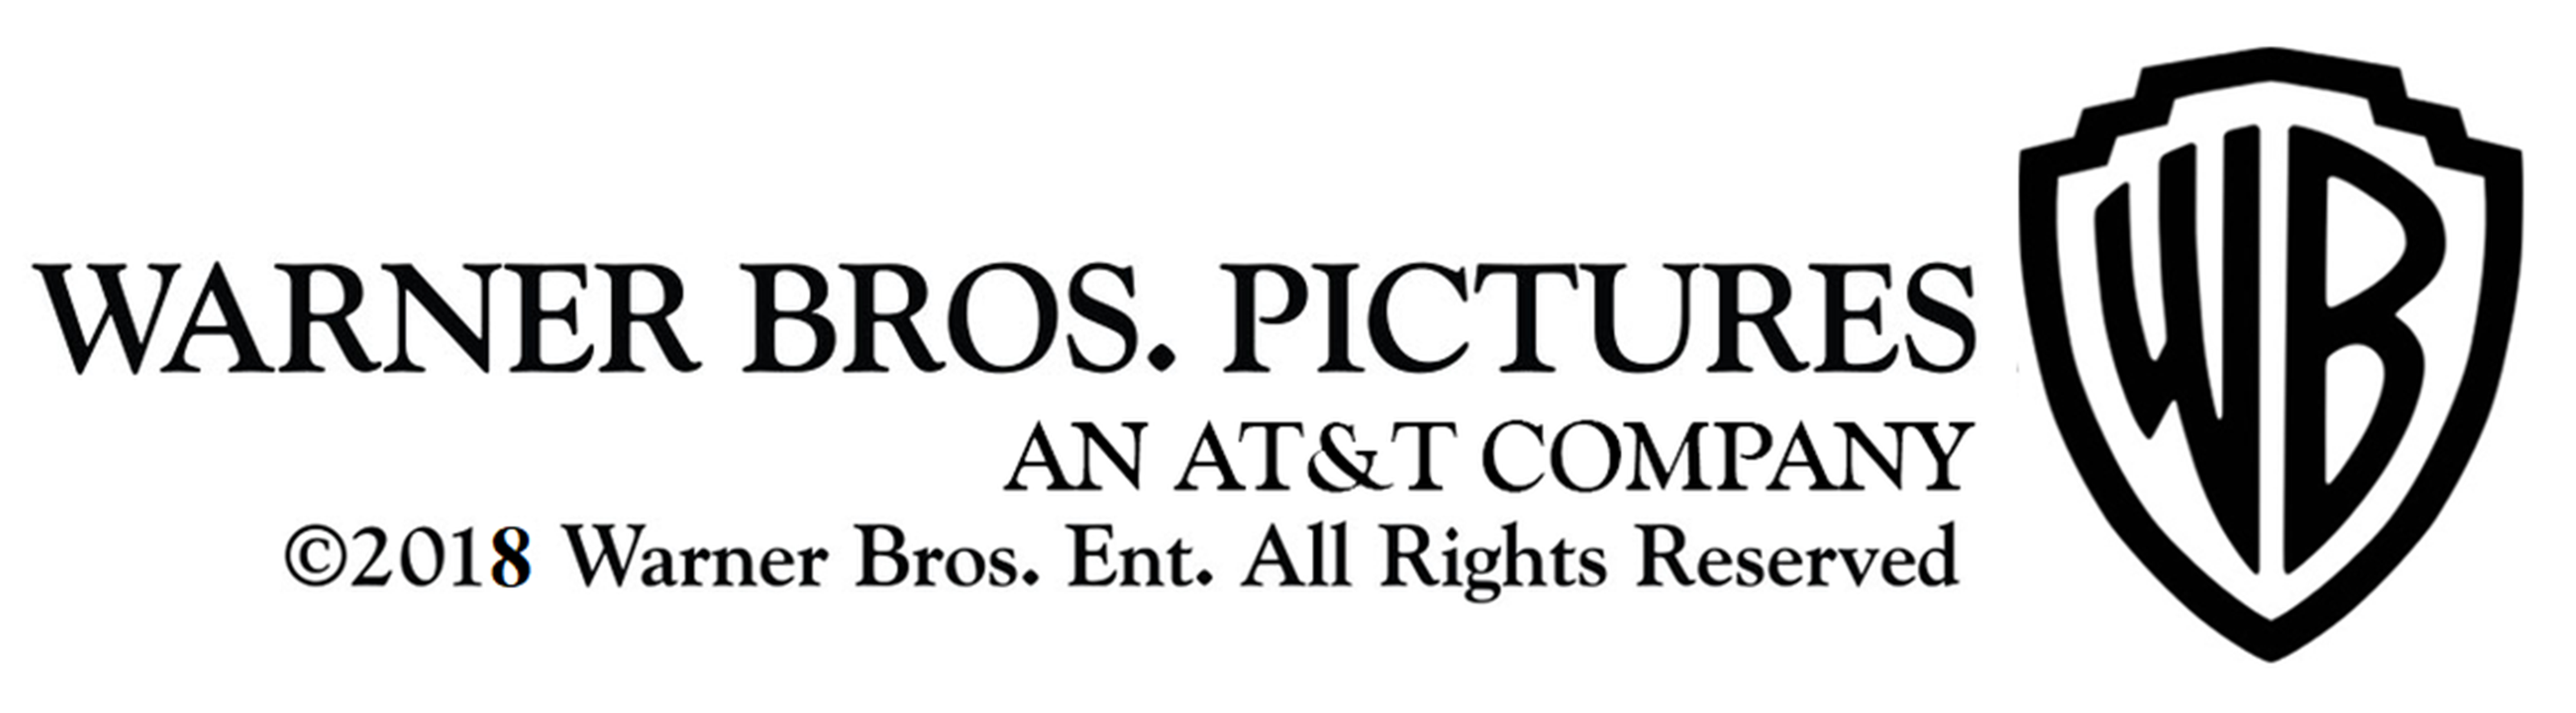 Warner Bros. Pictures Logo with AT&T byline 2018 (2).png